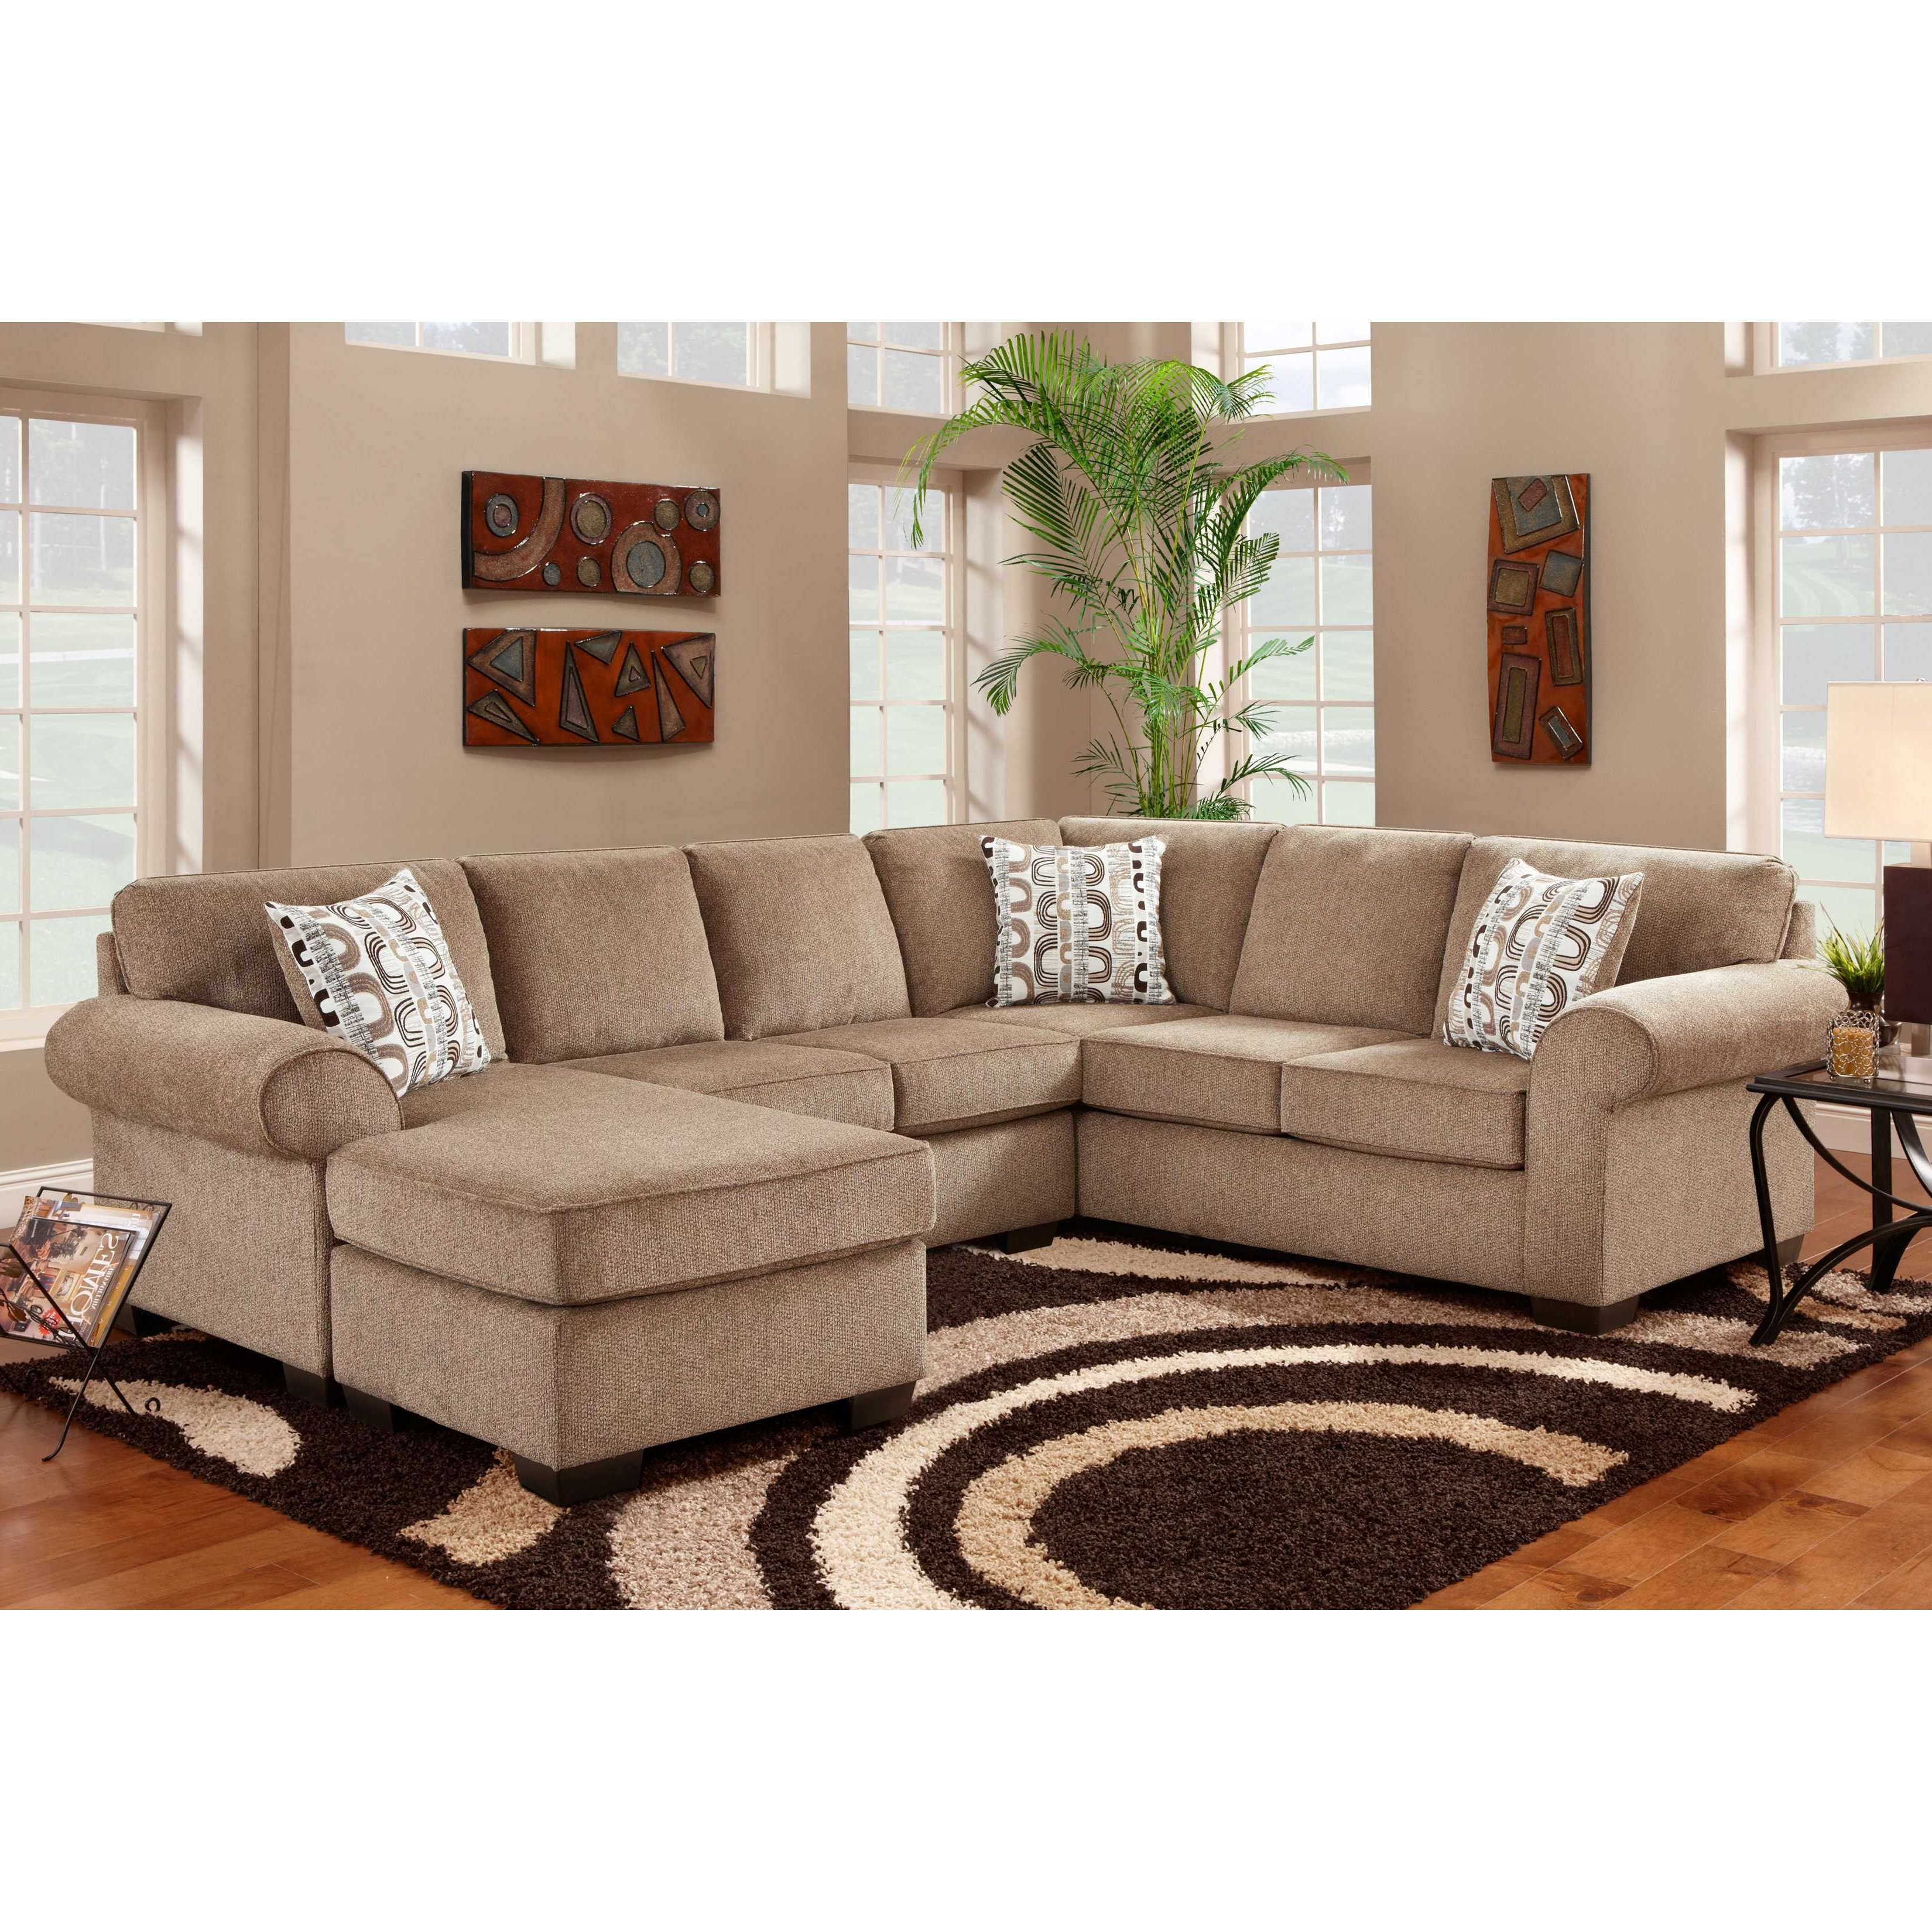 2018 Sectional Sofas Under 500 With Regard To Stunning Cheap Sectional Sofas Under 500 Trends Including Palm (View 2 of 20)